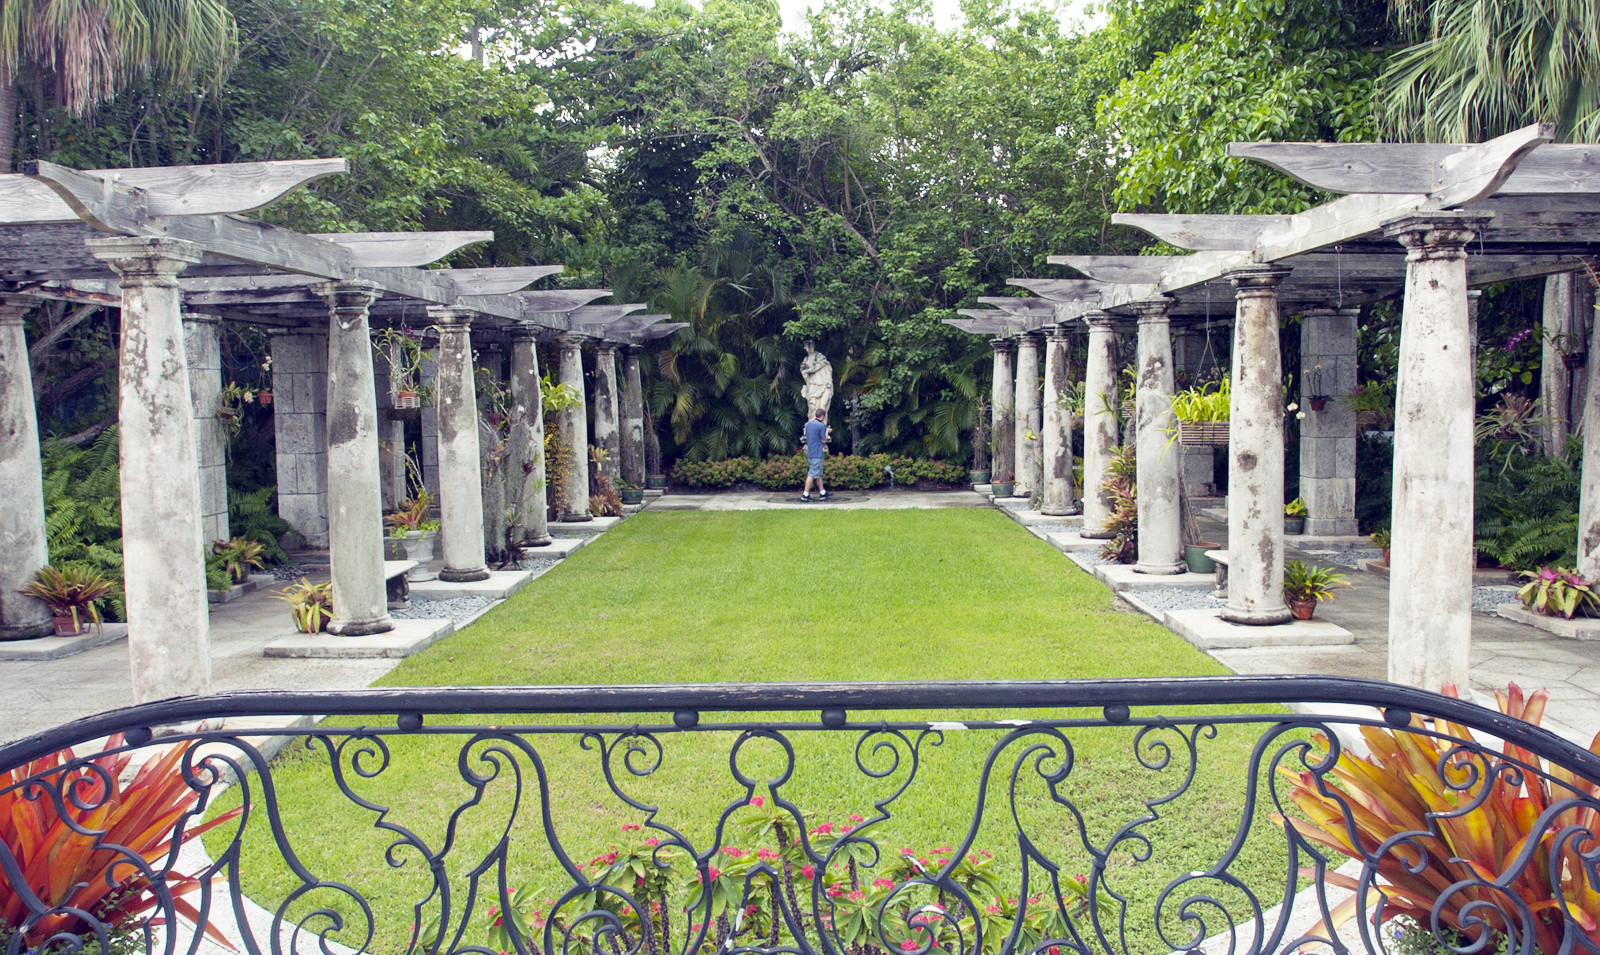 Things every South Floridian should do once - Vizcaya Museum & Gardens in Miami